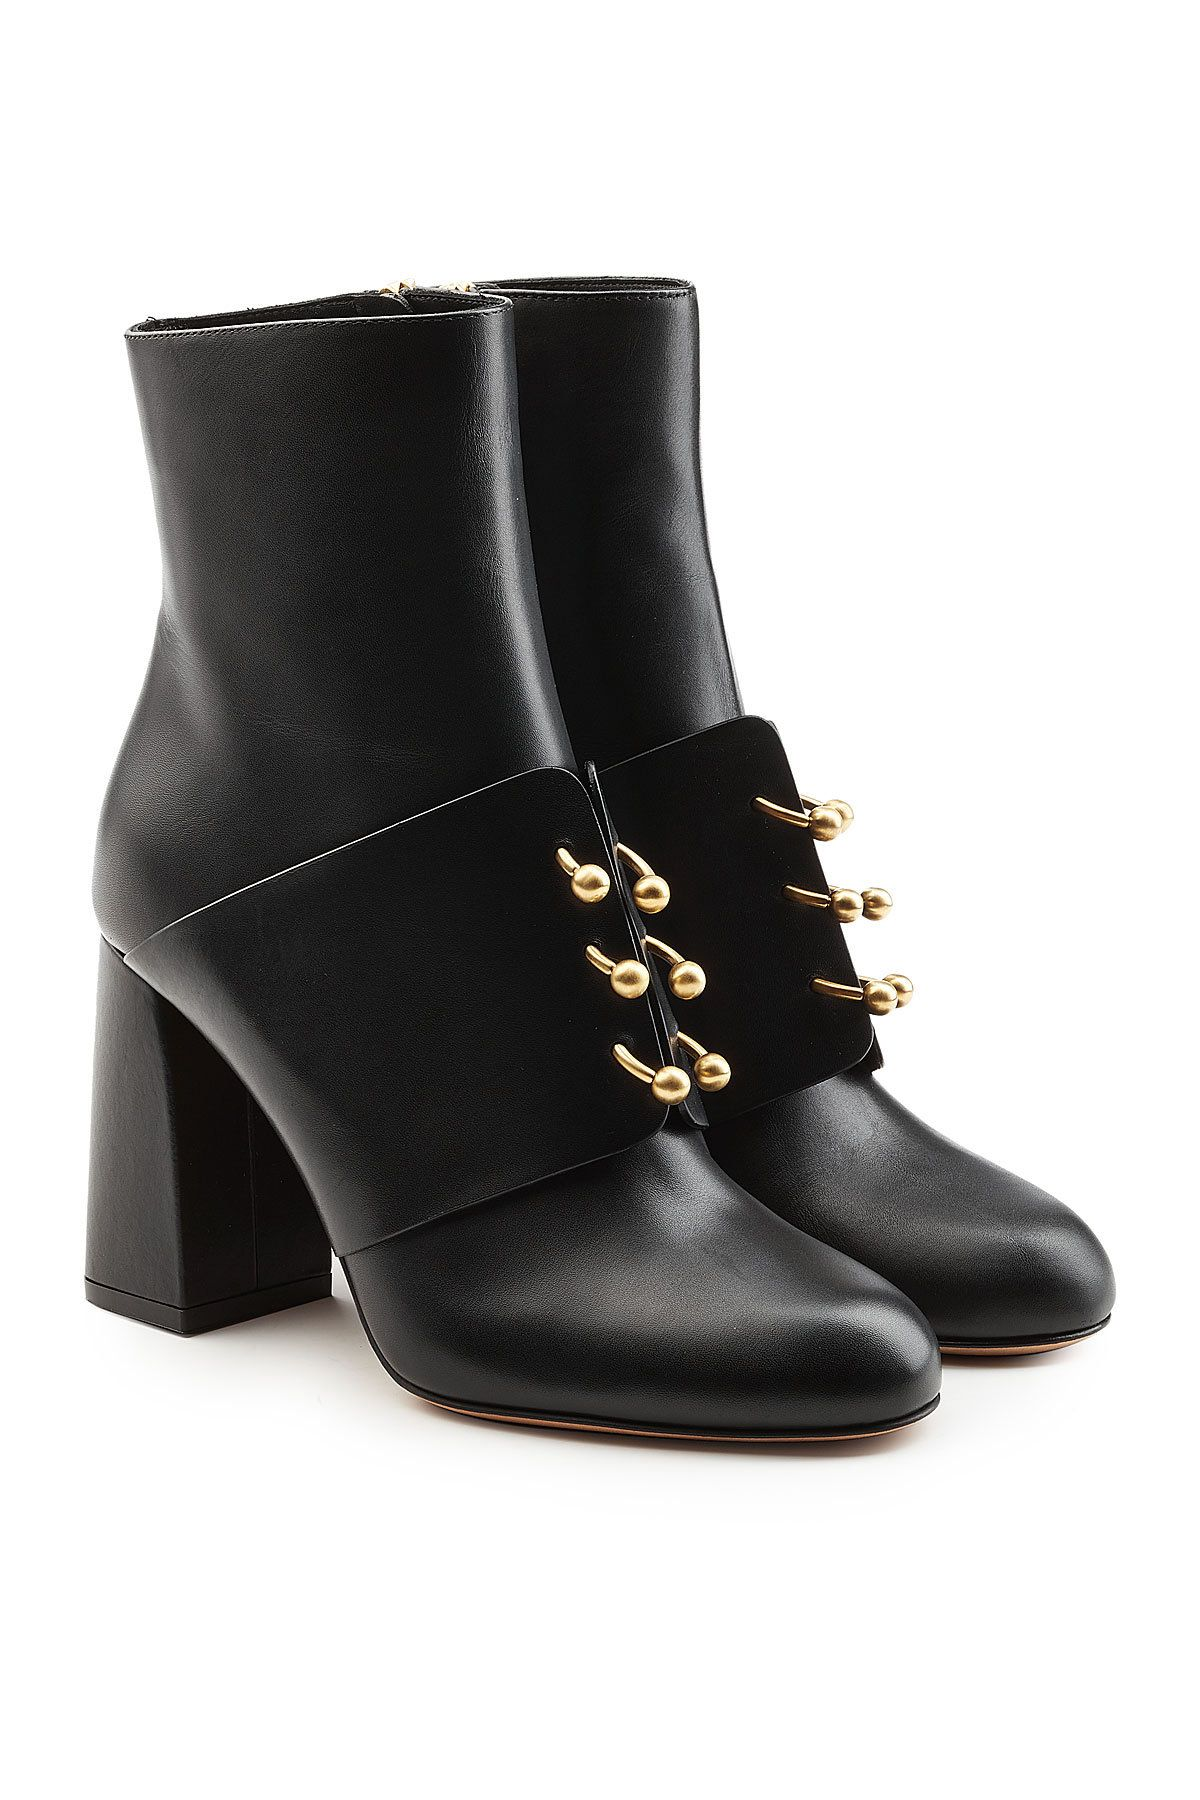 REDValentino Embellished leather Chelsea boots collections cheap price original cheap price perfect sale online CSrfq